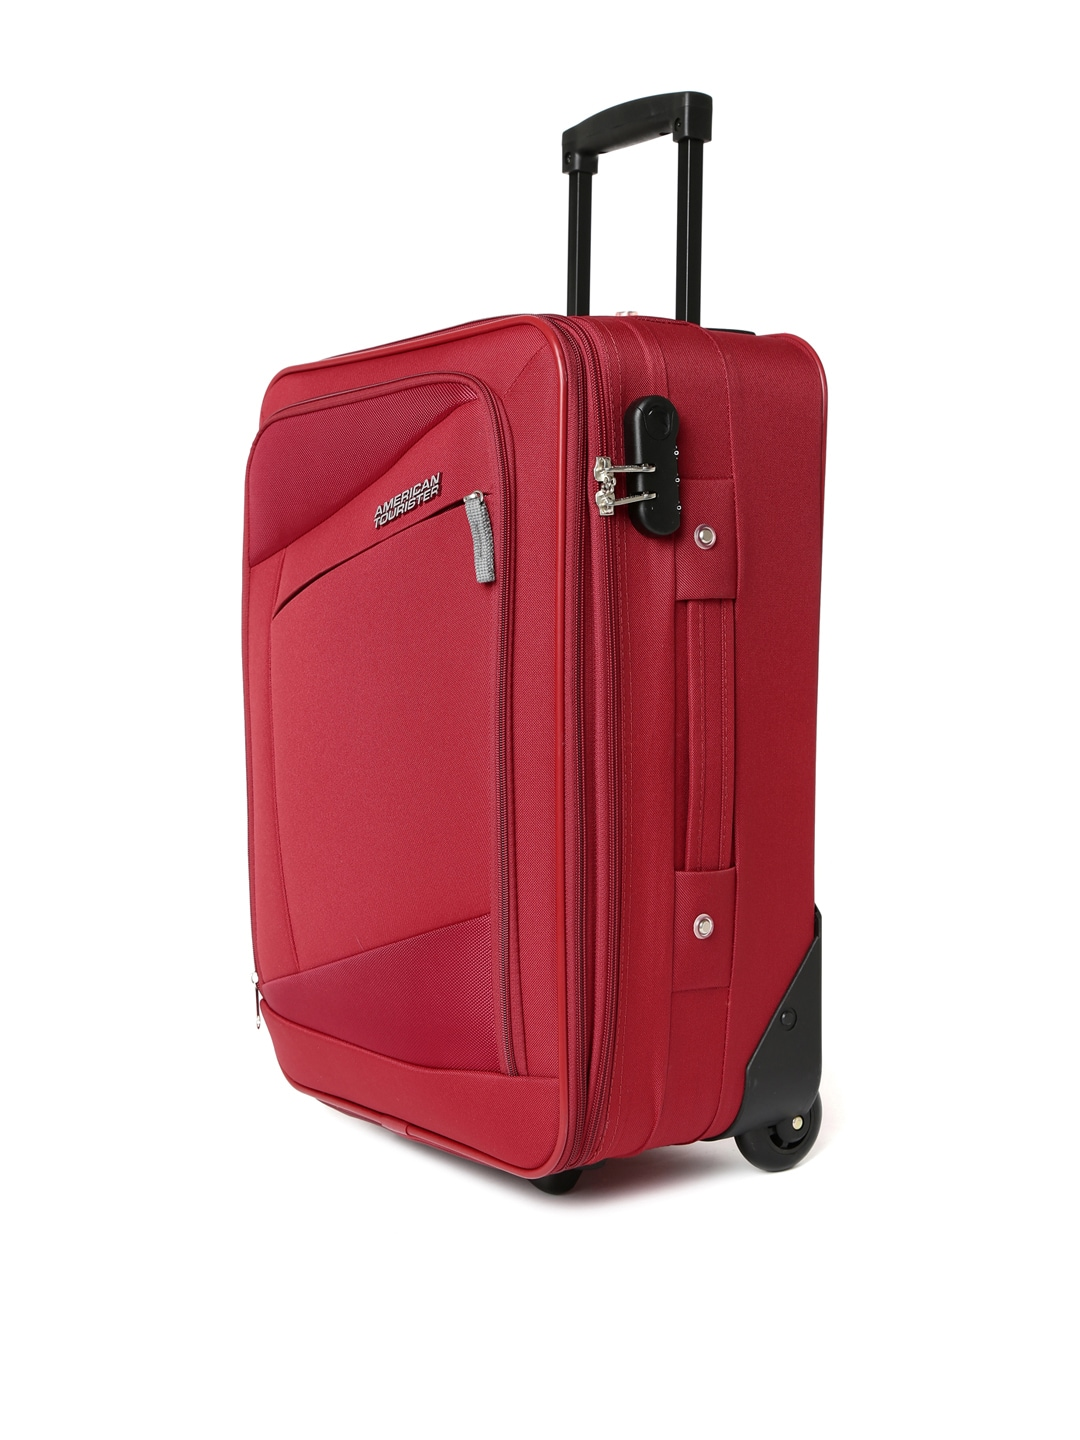 Cm Trolley Travel Bag Online India